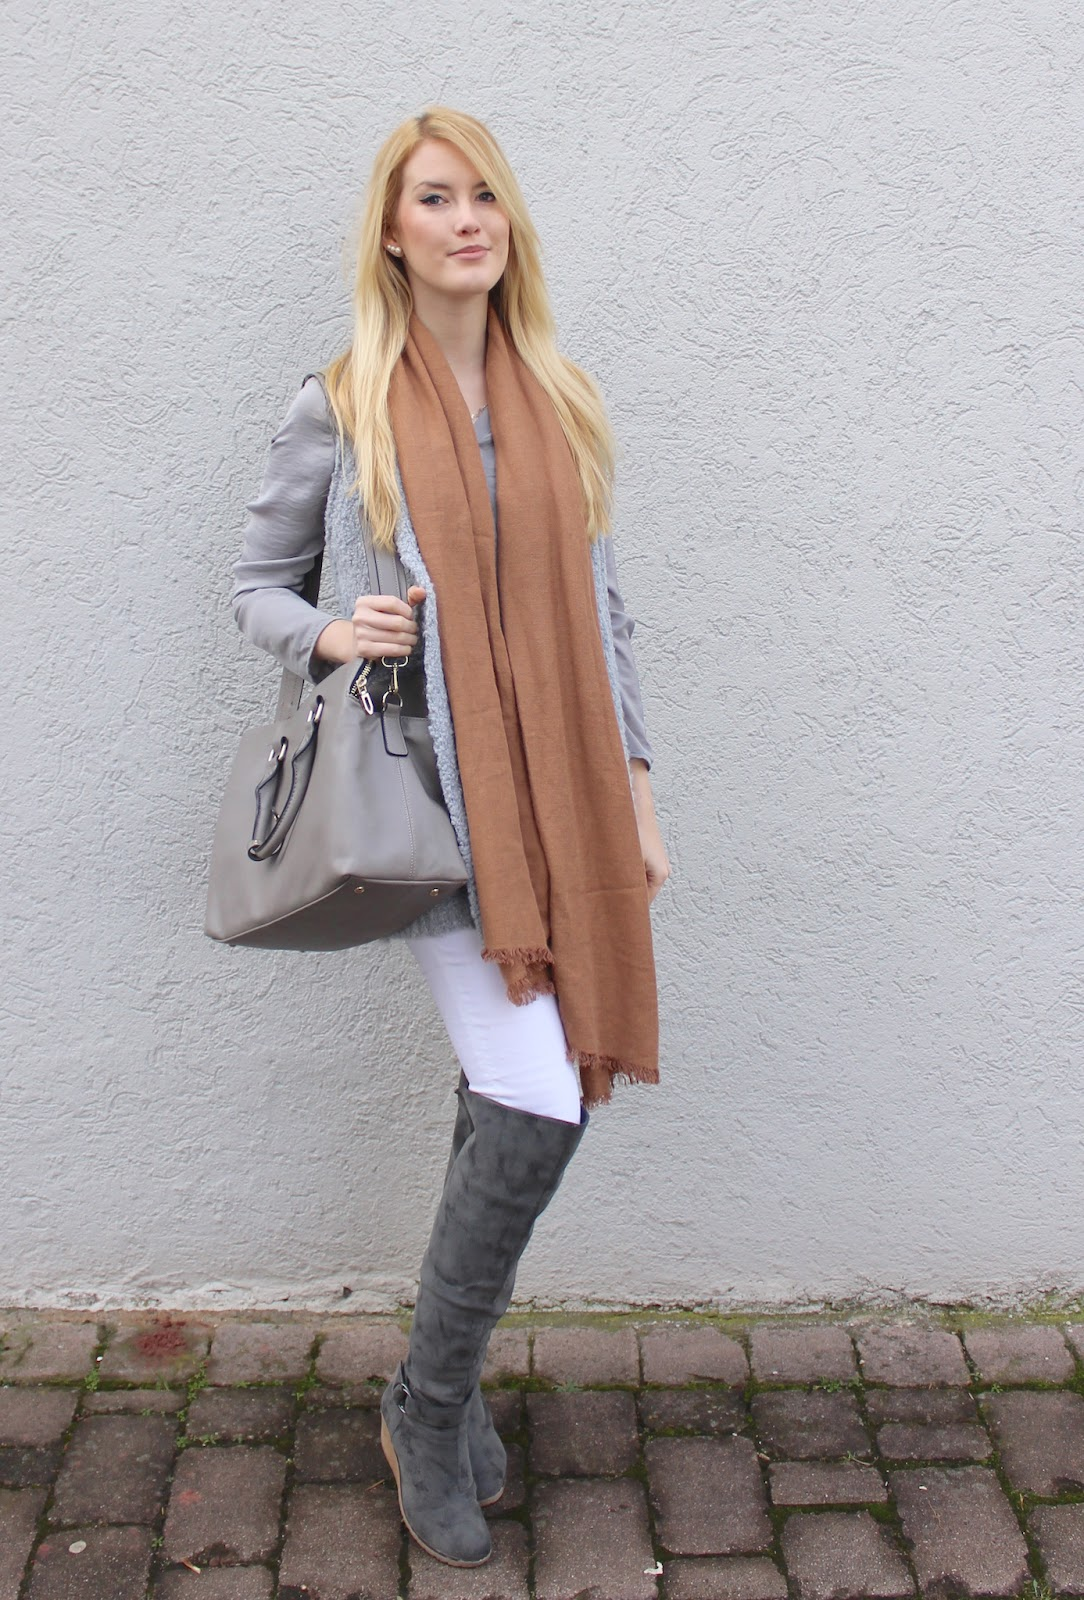 TheBlondeLion Outfit Beige Grau Neutral Shades Overknees http://theblondelion.blogspot.com/2015/02/how-to-style-10-neutral-shades.html